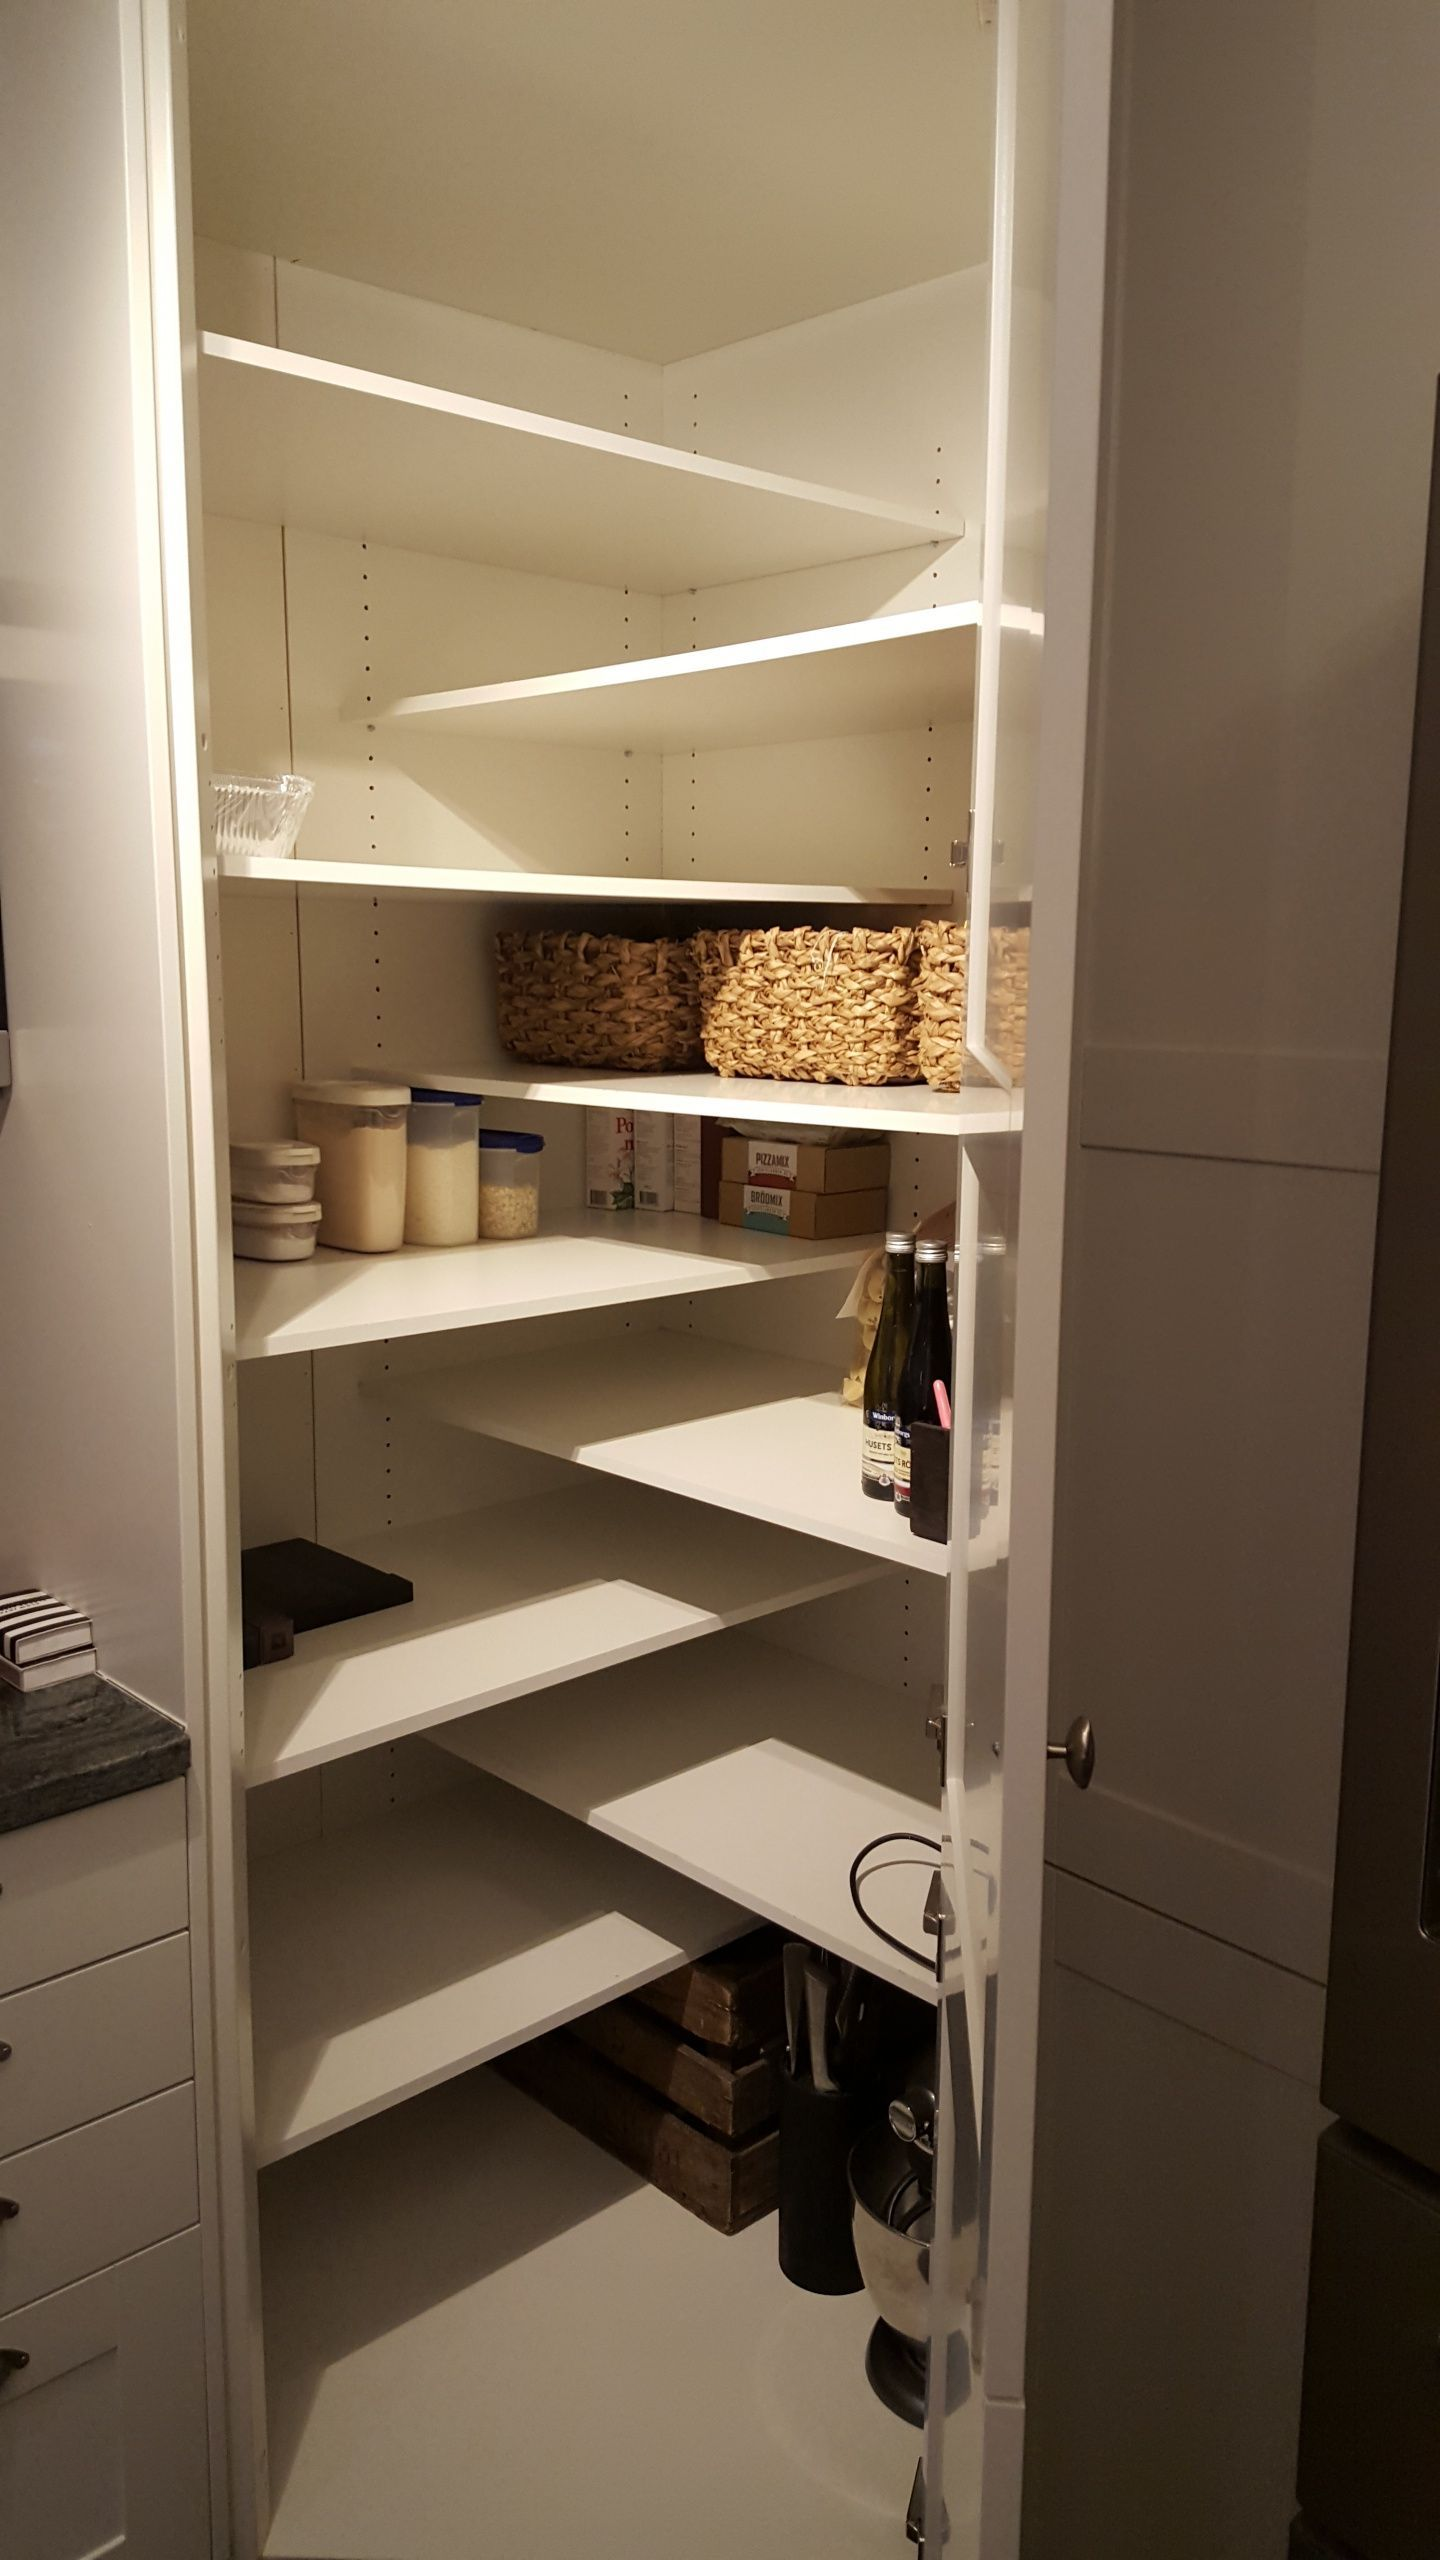 Something Like This Might Work In The Downstairs Storage Area If We Decide We Need A Pantry Interior Design Kitchen Diy Kitchen Storage Closet Kitchen